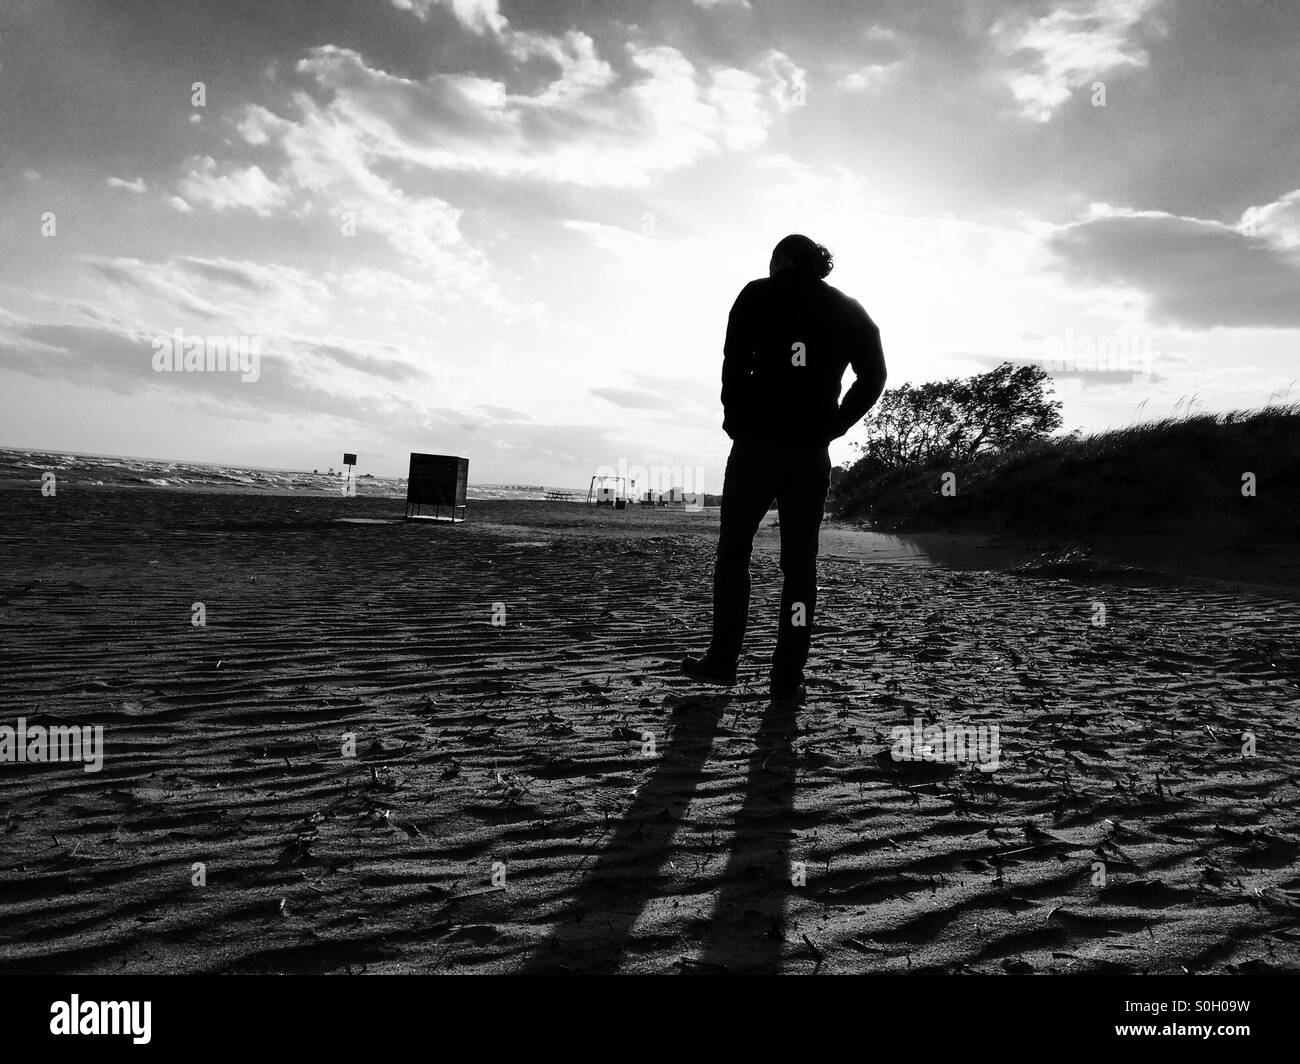 Walking alone black and white stock photos images alamy